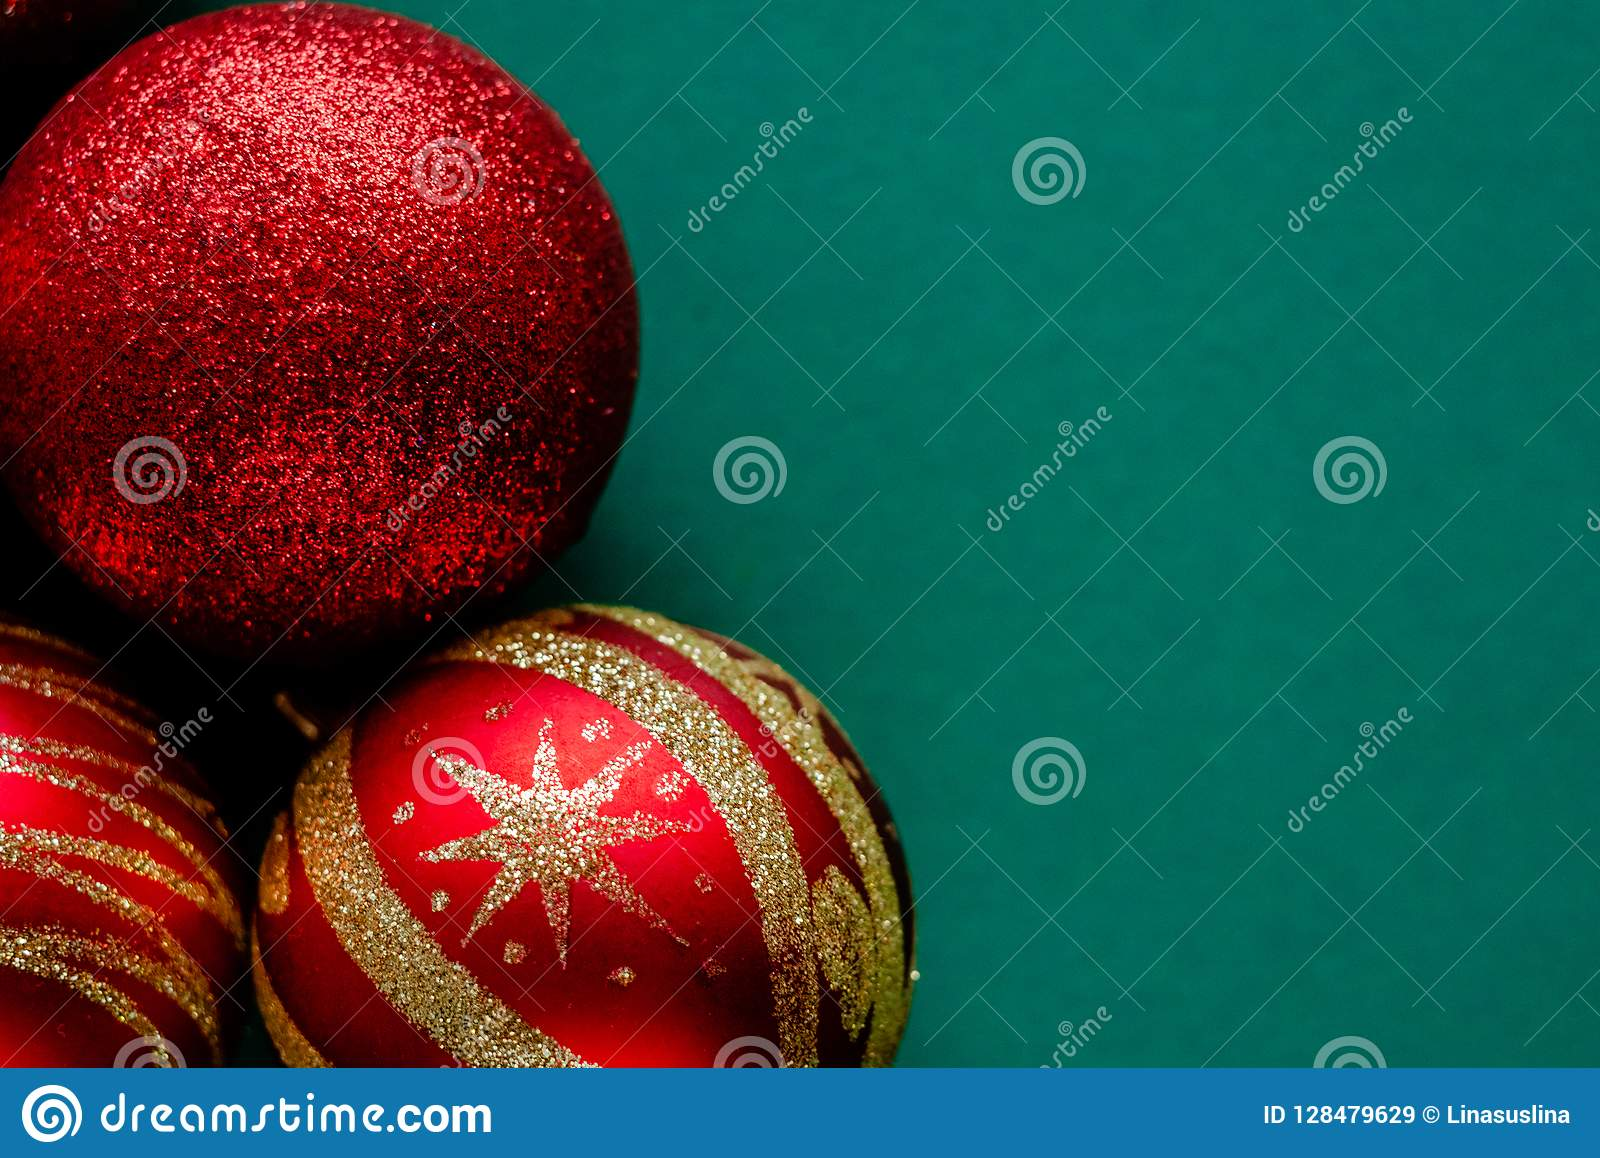 Red New Year Decorations Christmas Balls Stock Image ...